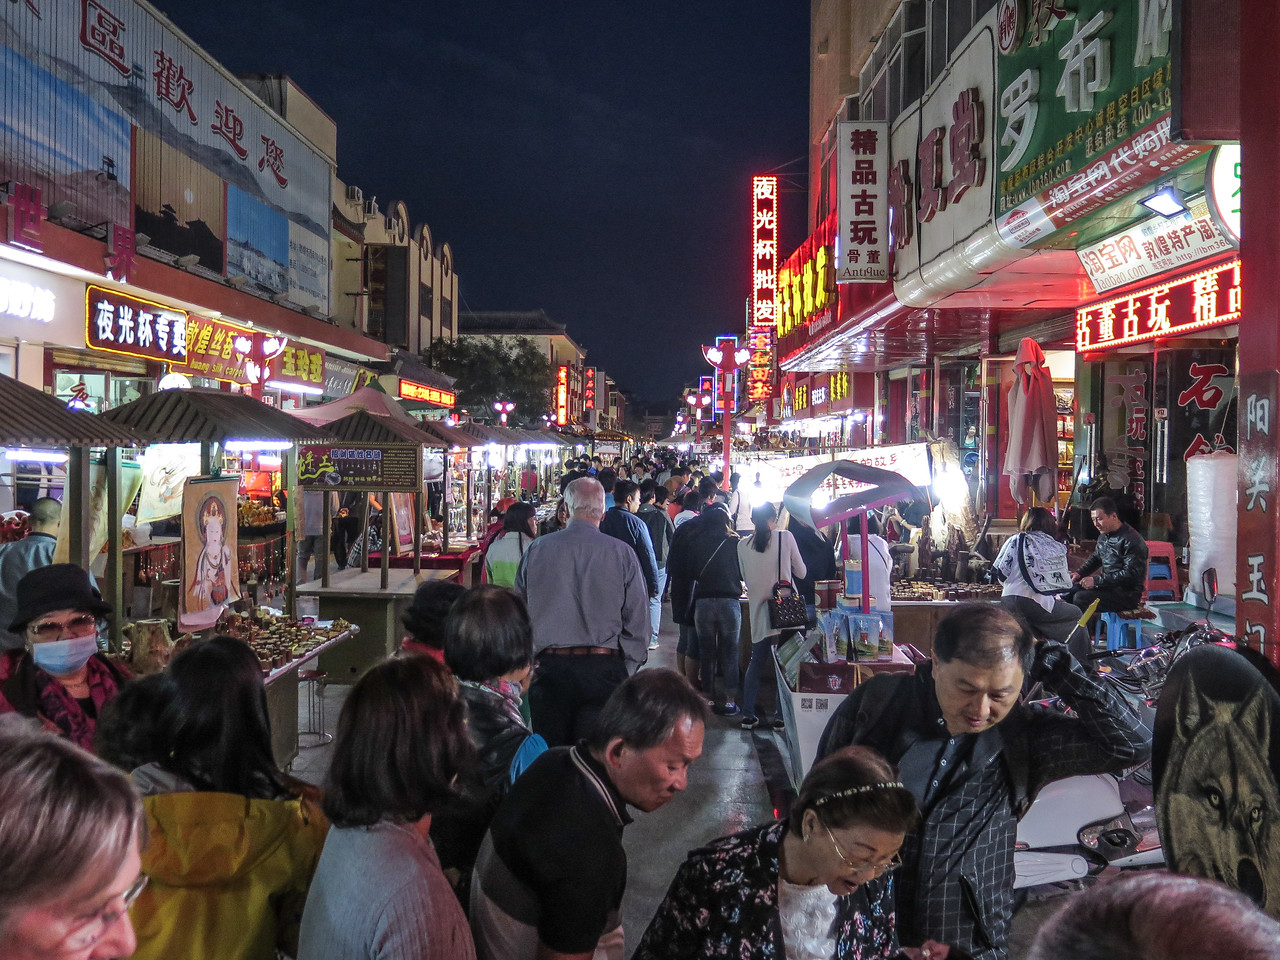 Evening Market in Dunhuang